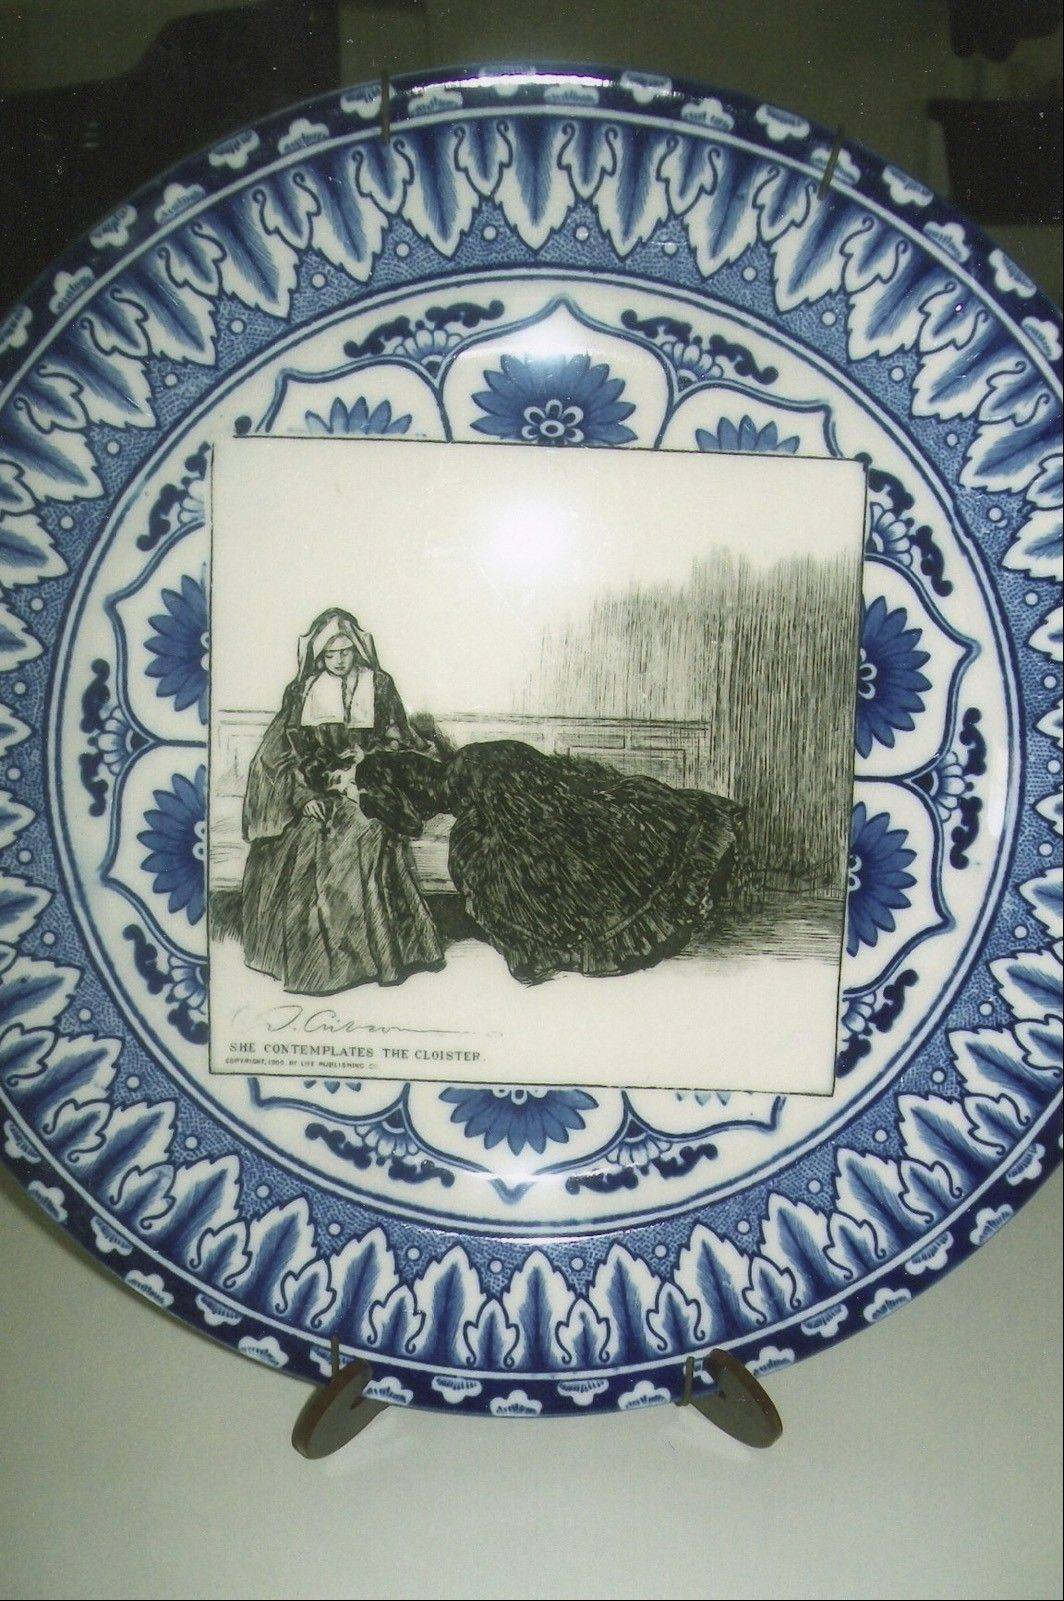 """She Contemplates the Cloister"" is one of a series of Gibson girl plates."